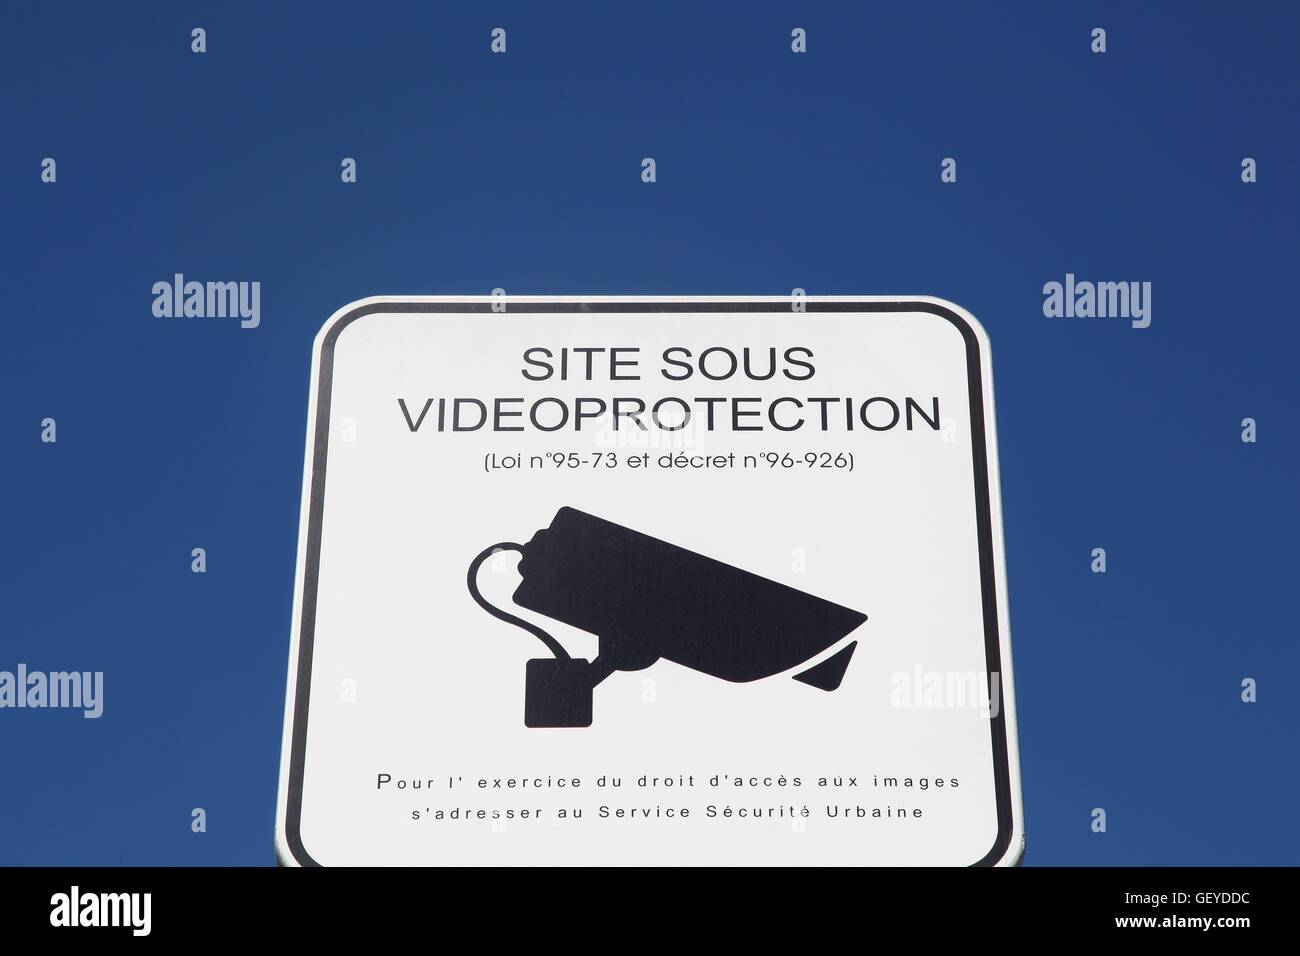 Panel in the street of video surveillance in France - Stock Image